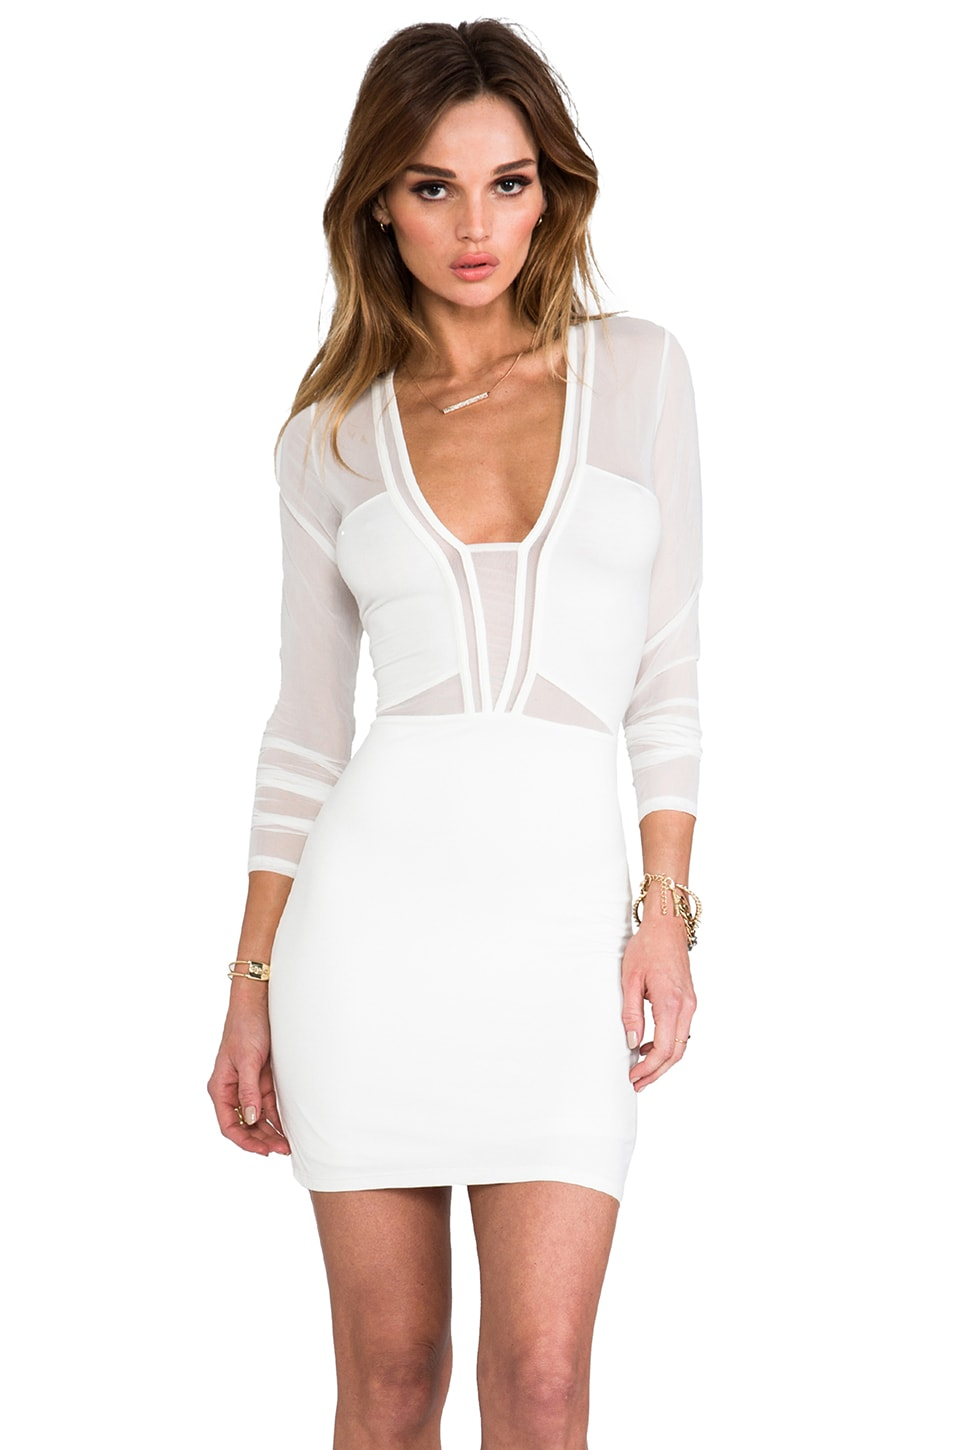 STYLESTALKER x REVOLVE Seductive Dress in Ivory